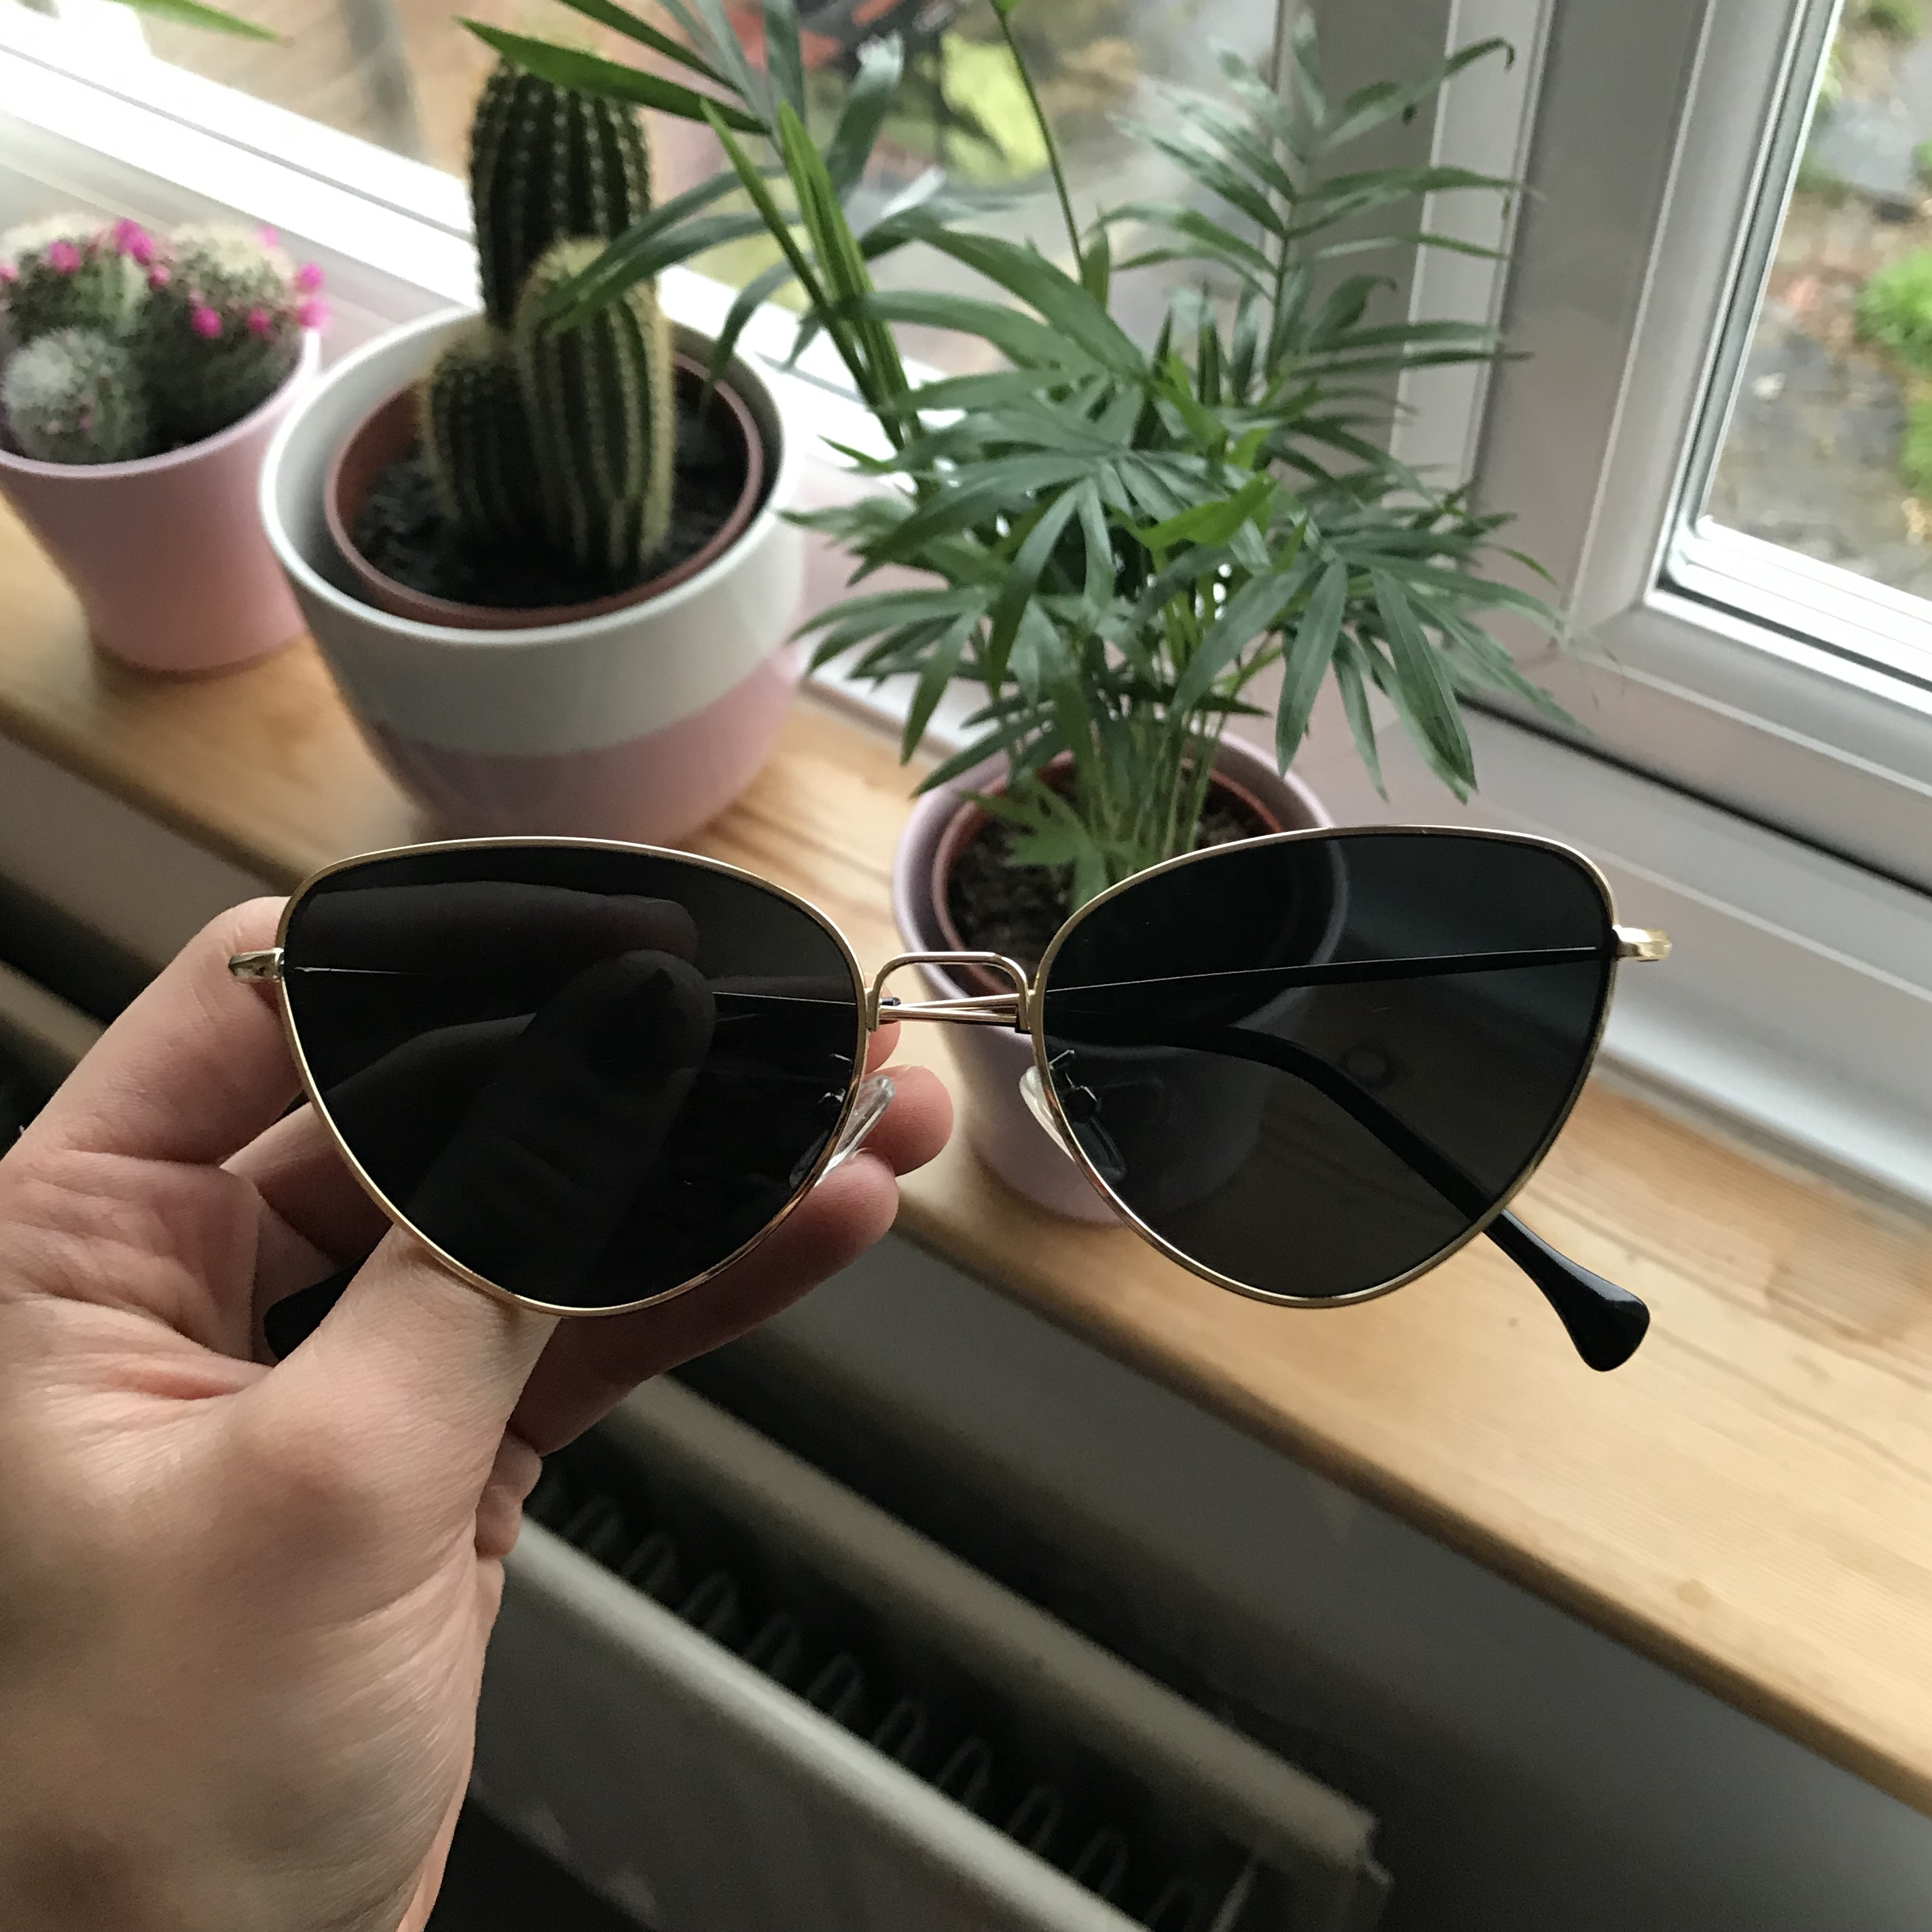 c16e9c456e GOLD METAL BLACK LENSE CAT EYE SUNGLASSES   FREE P P Topshop - Depop